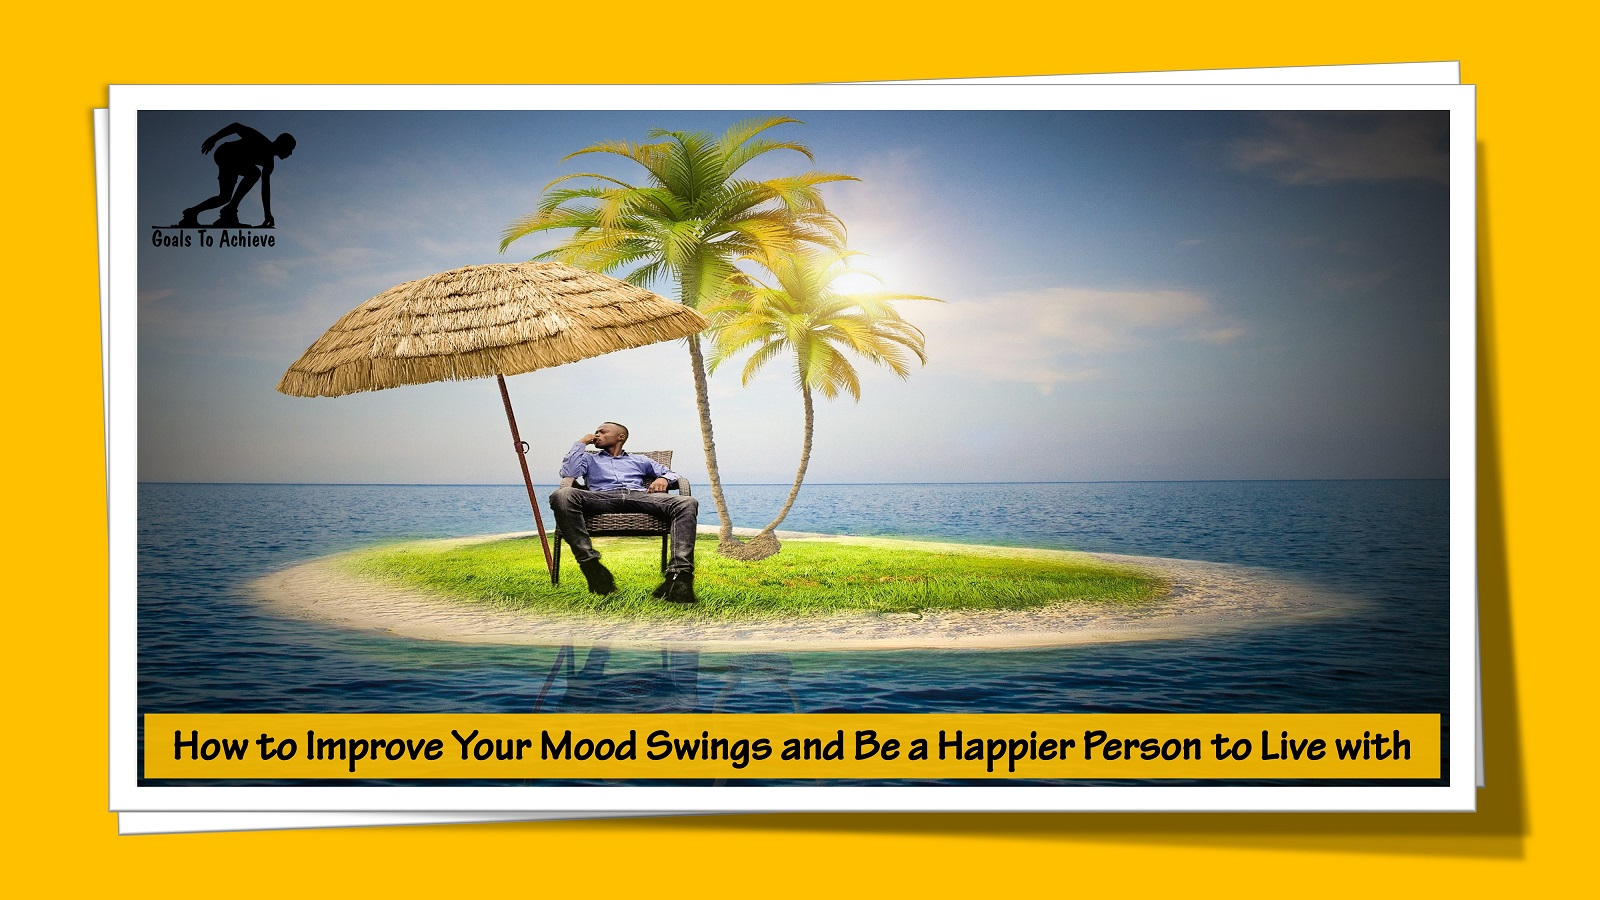 How to Improve Your Mood Swings and Be a Happier Person to Live with